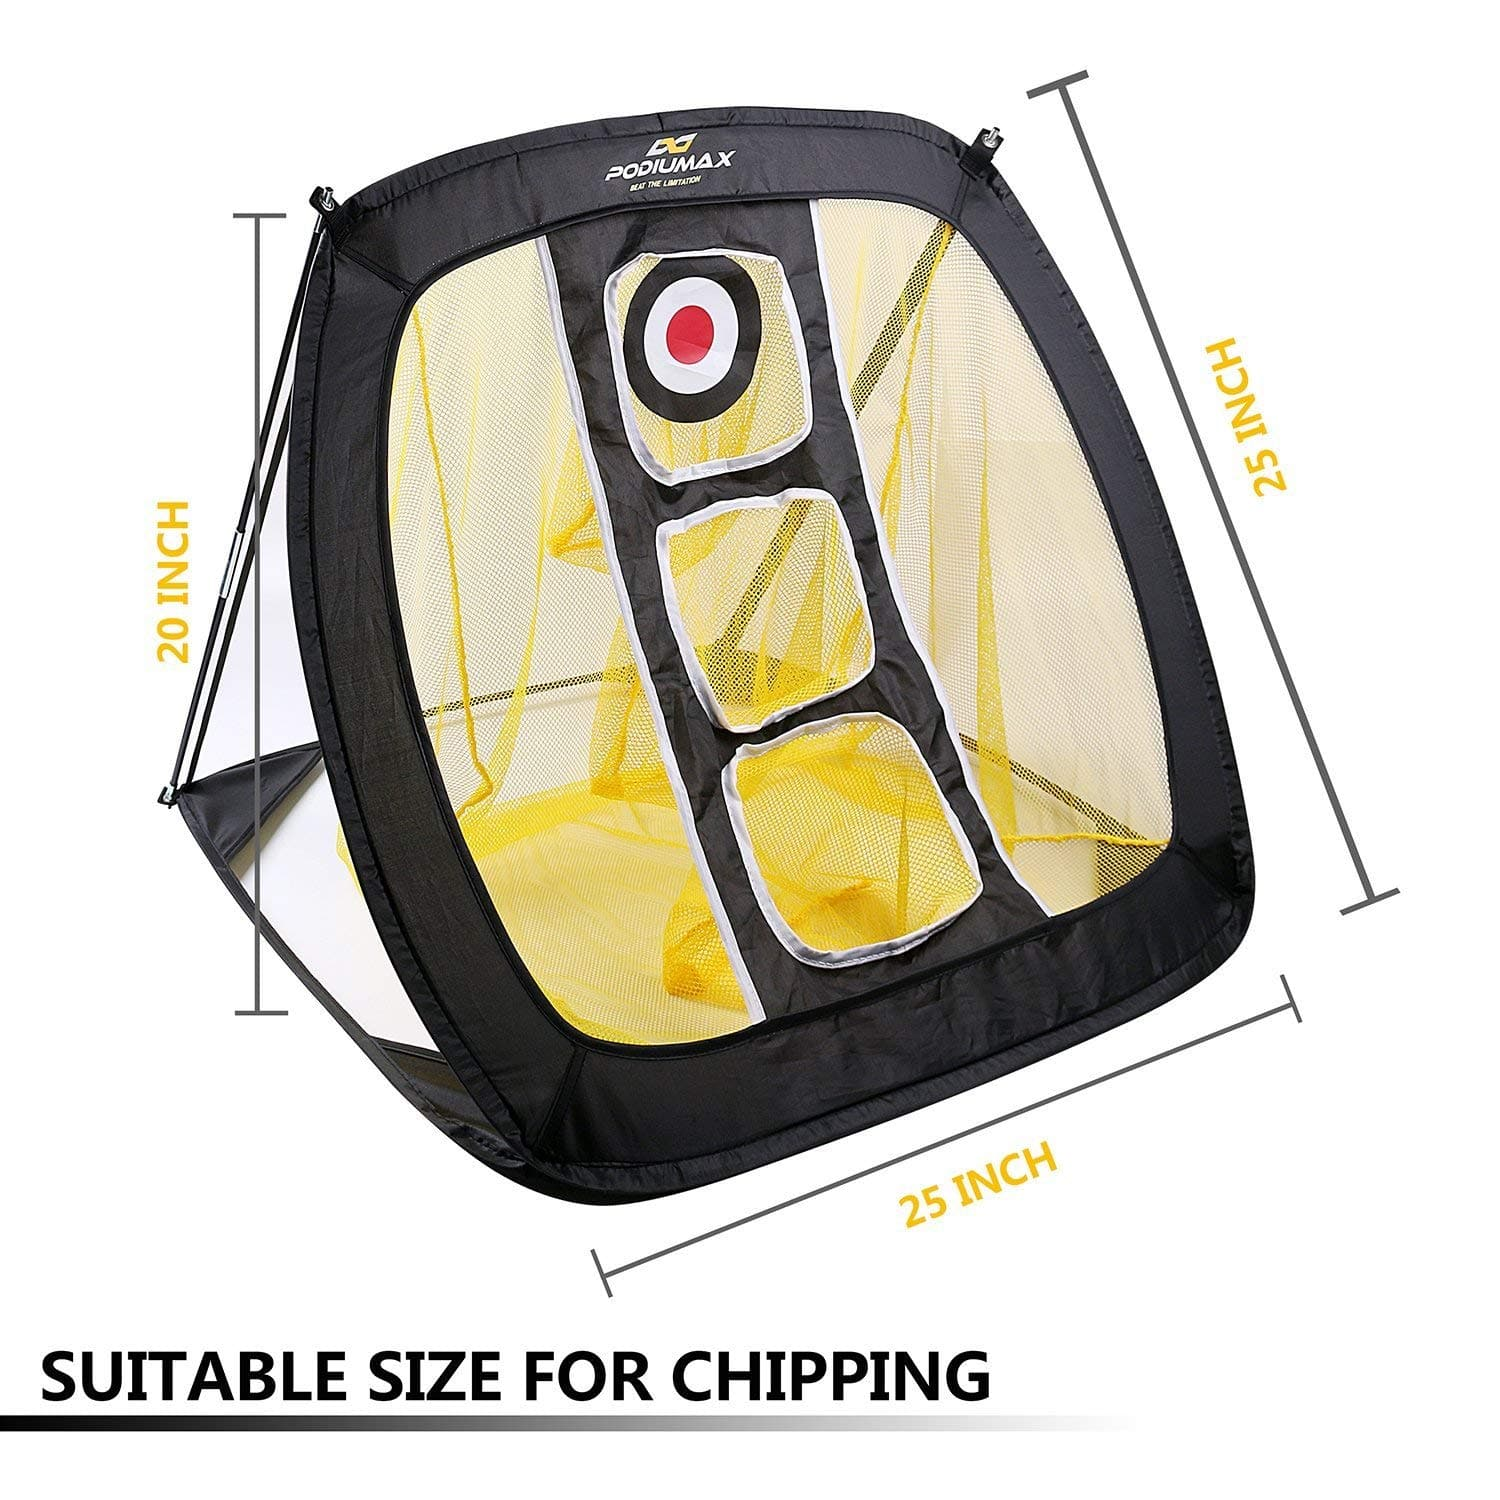 Golfing Target Net for Accuracy and Swing Practice -- $9.99